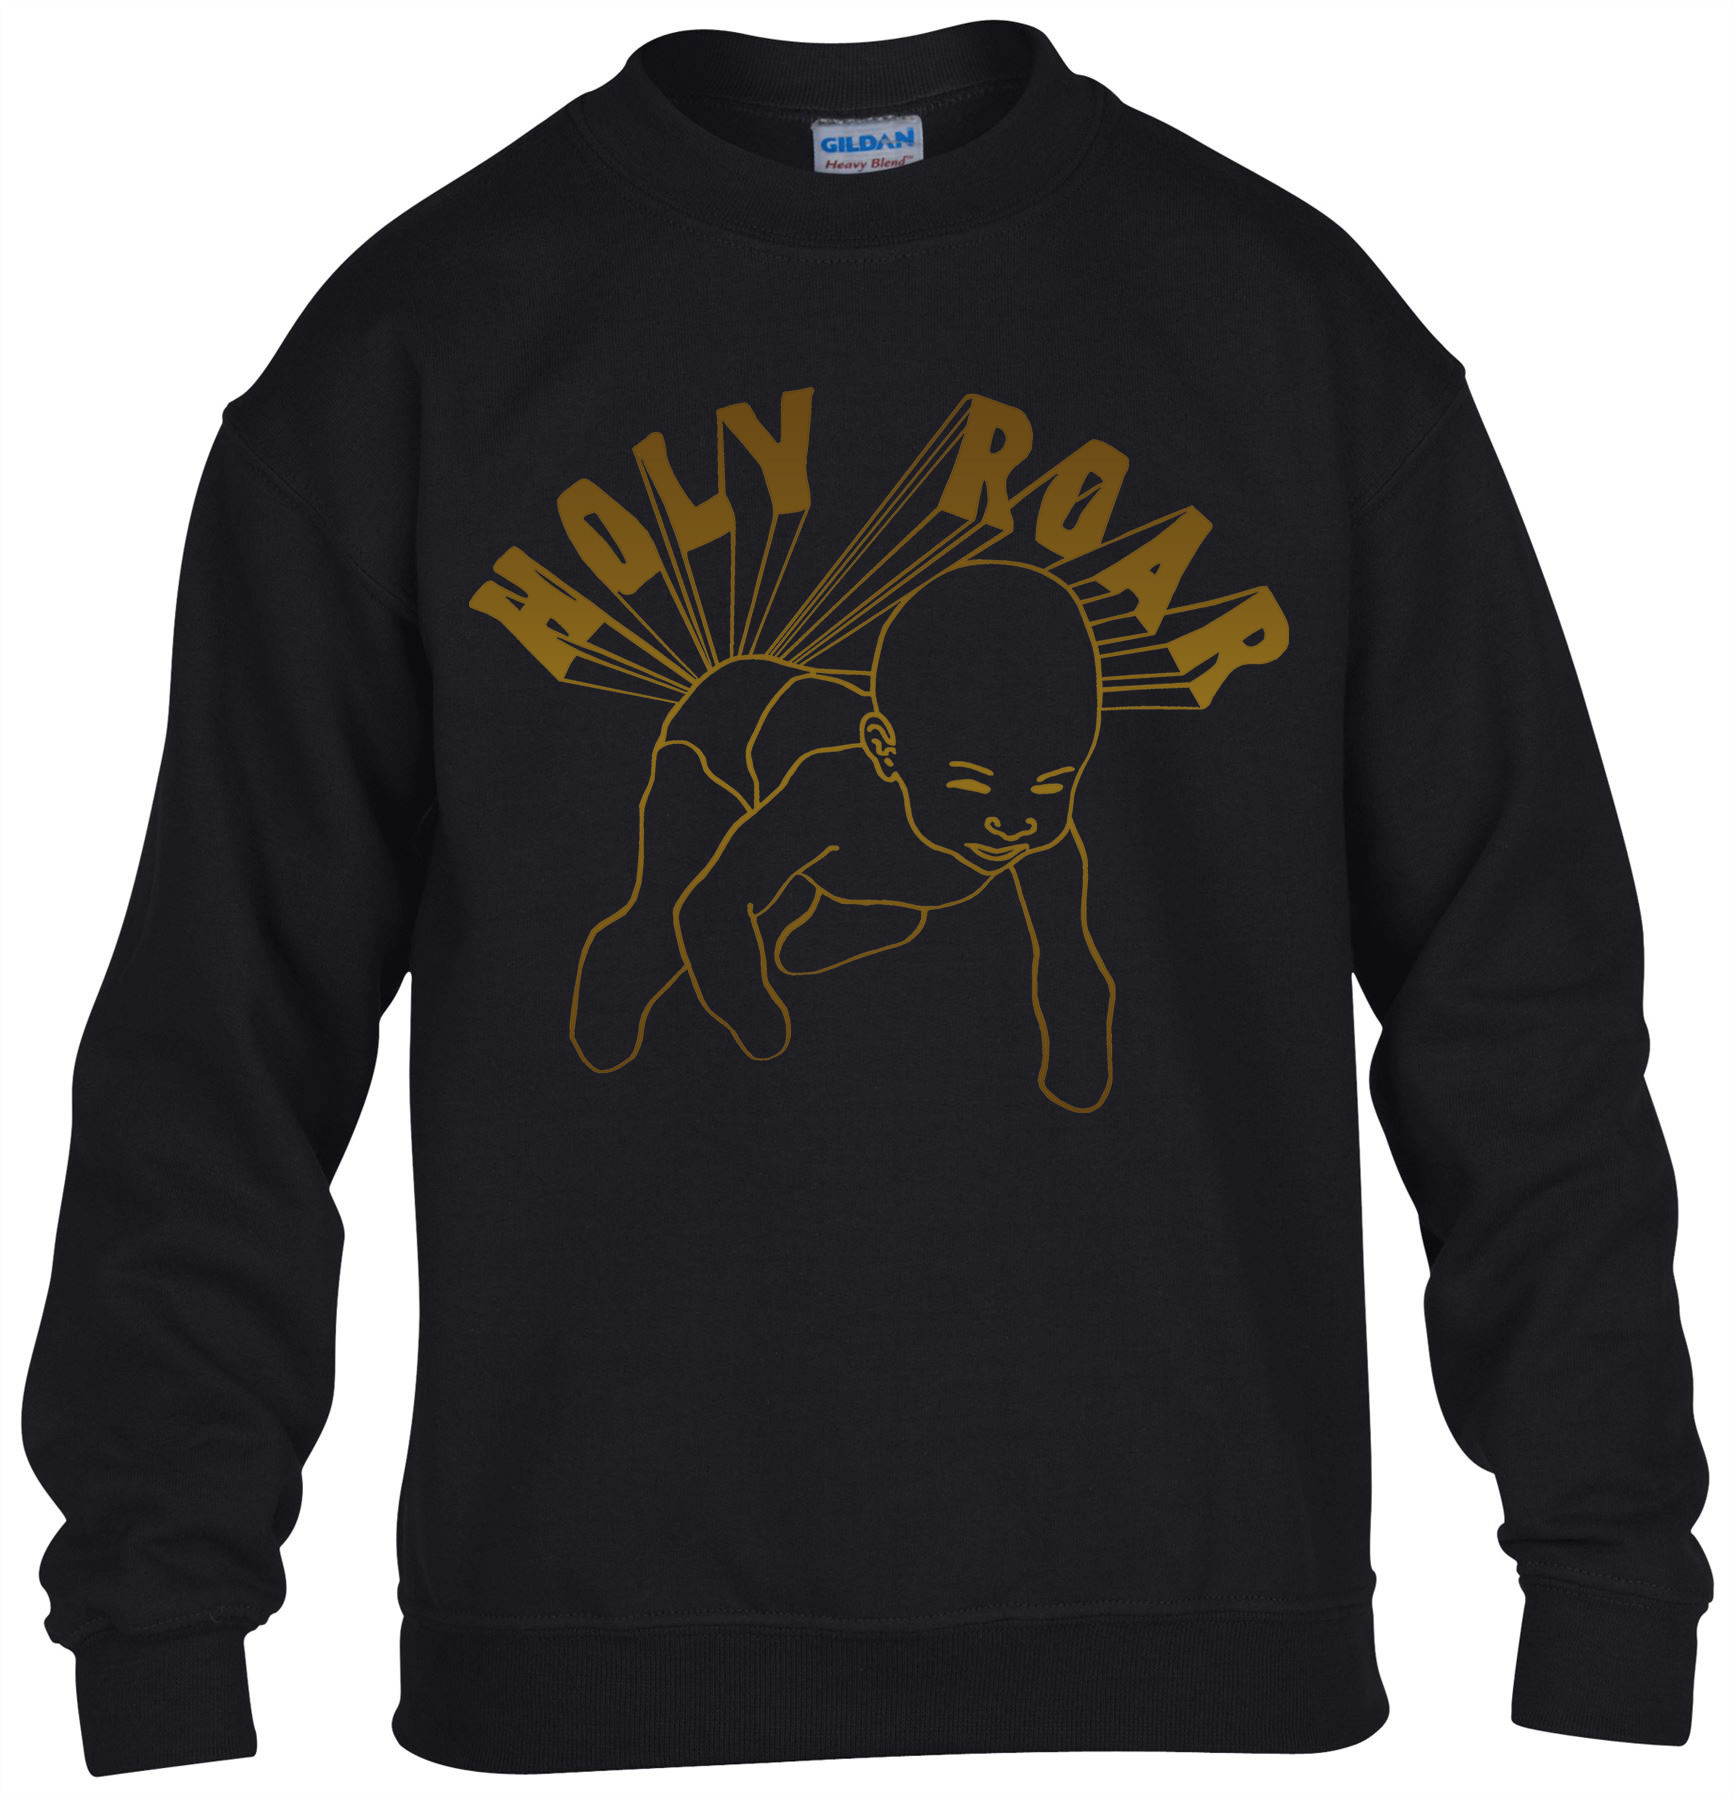 Holy Roar Crewneck Sweater